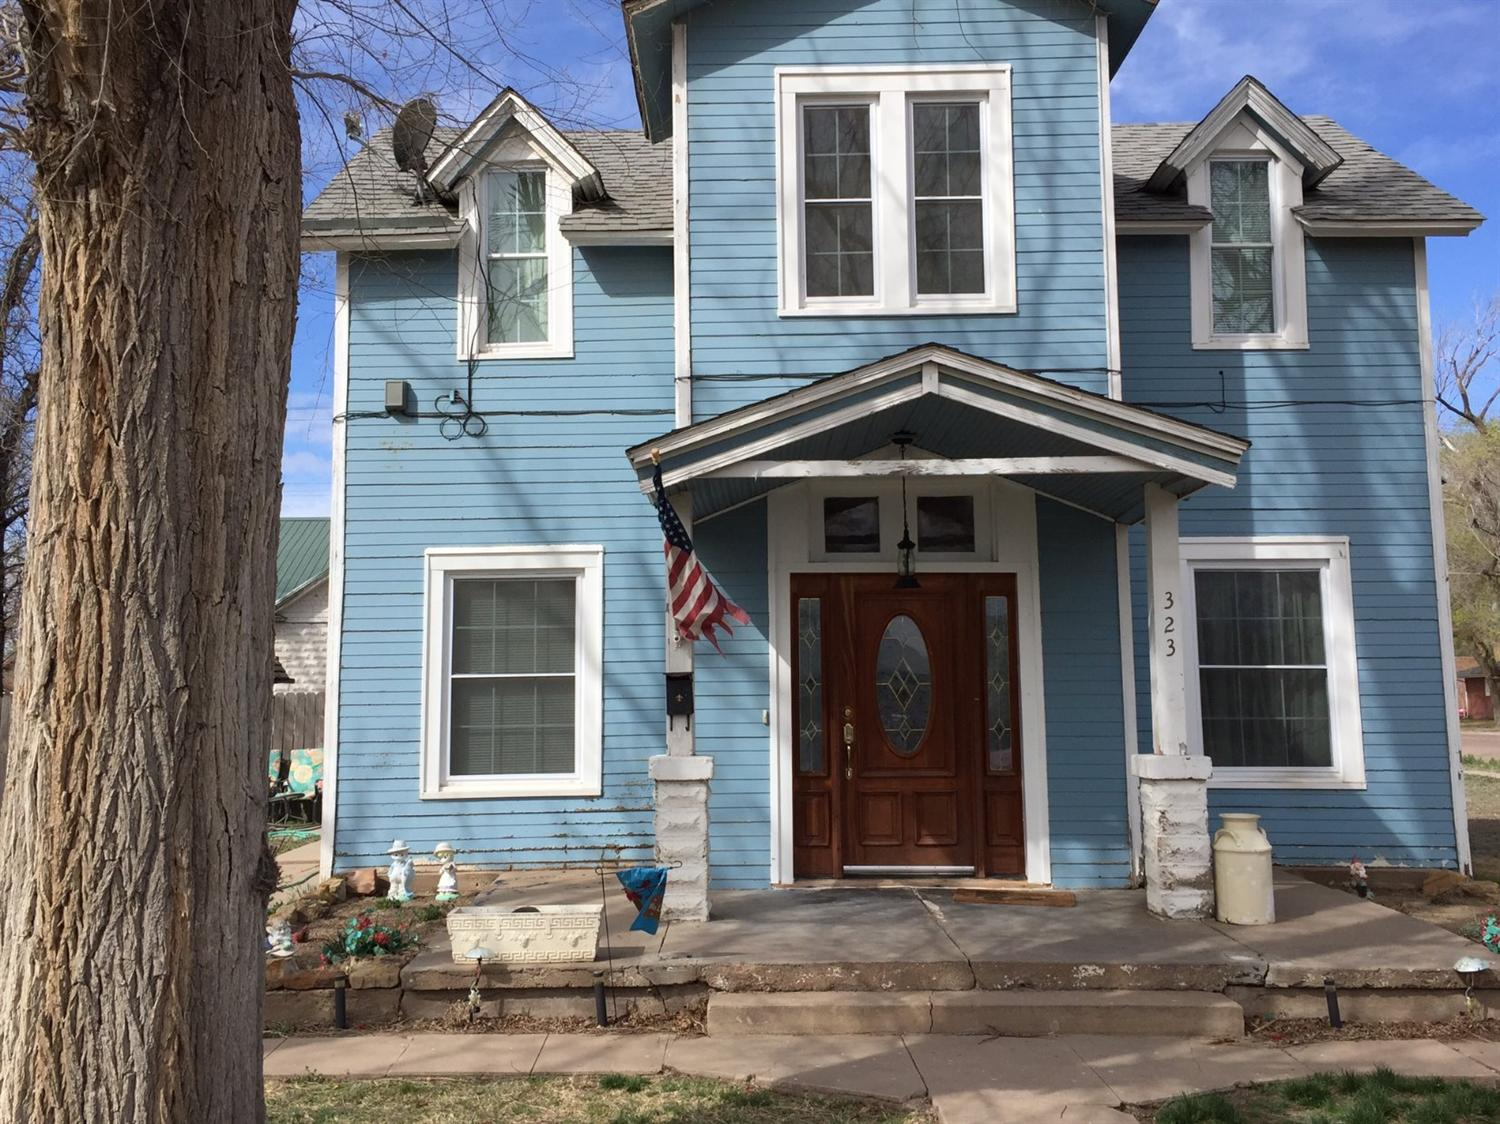 323 N. 10th Street, Garden City, KS 67846